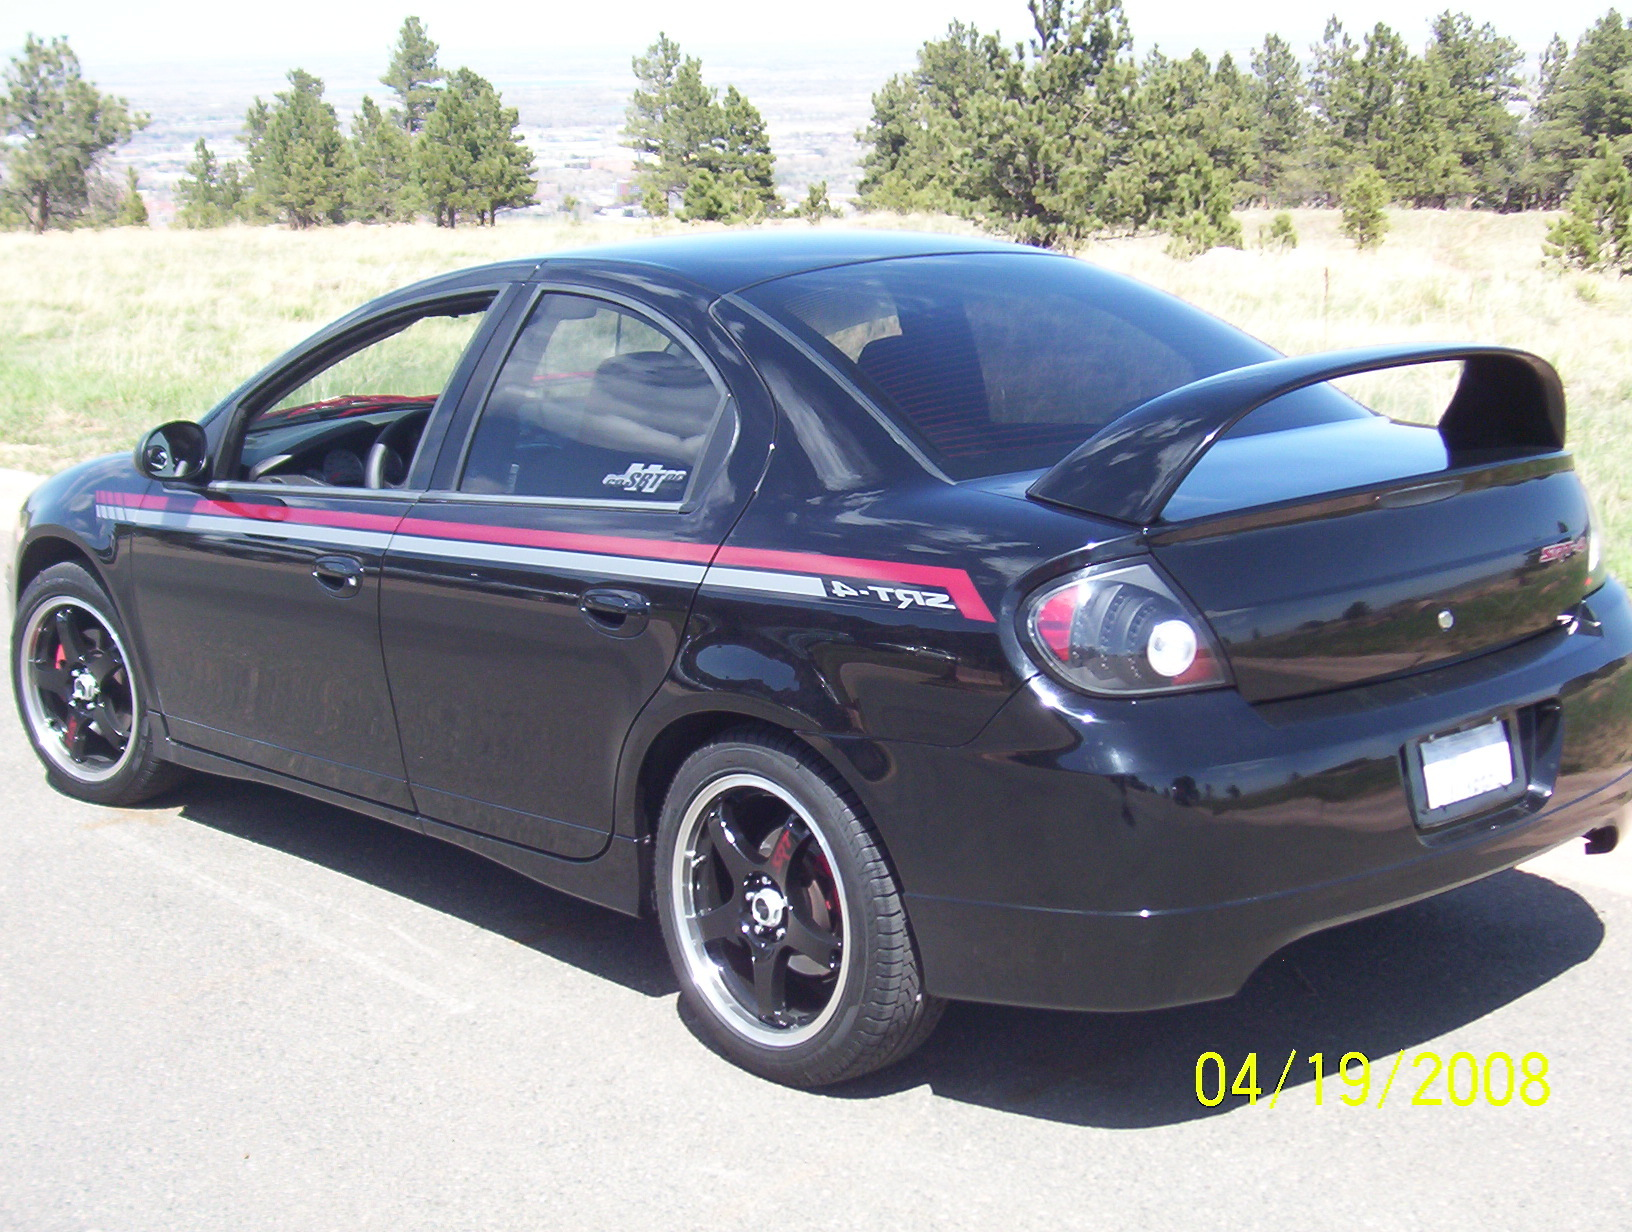 SHOWTYMESRT4 2004 Dodge Neon 12954567